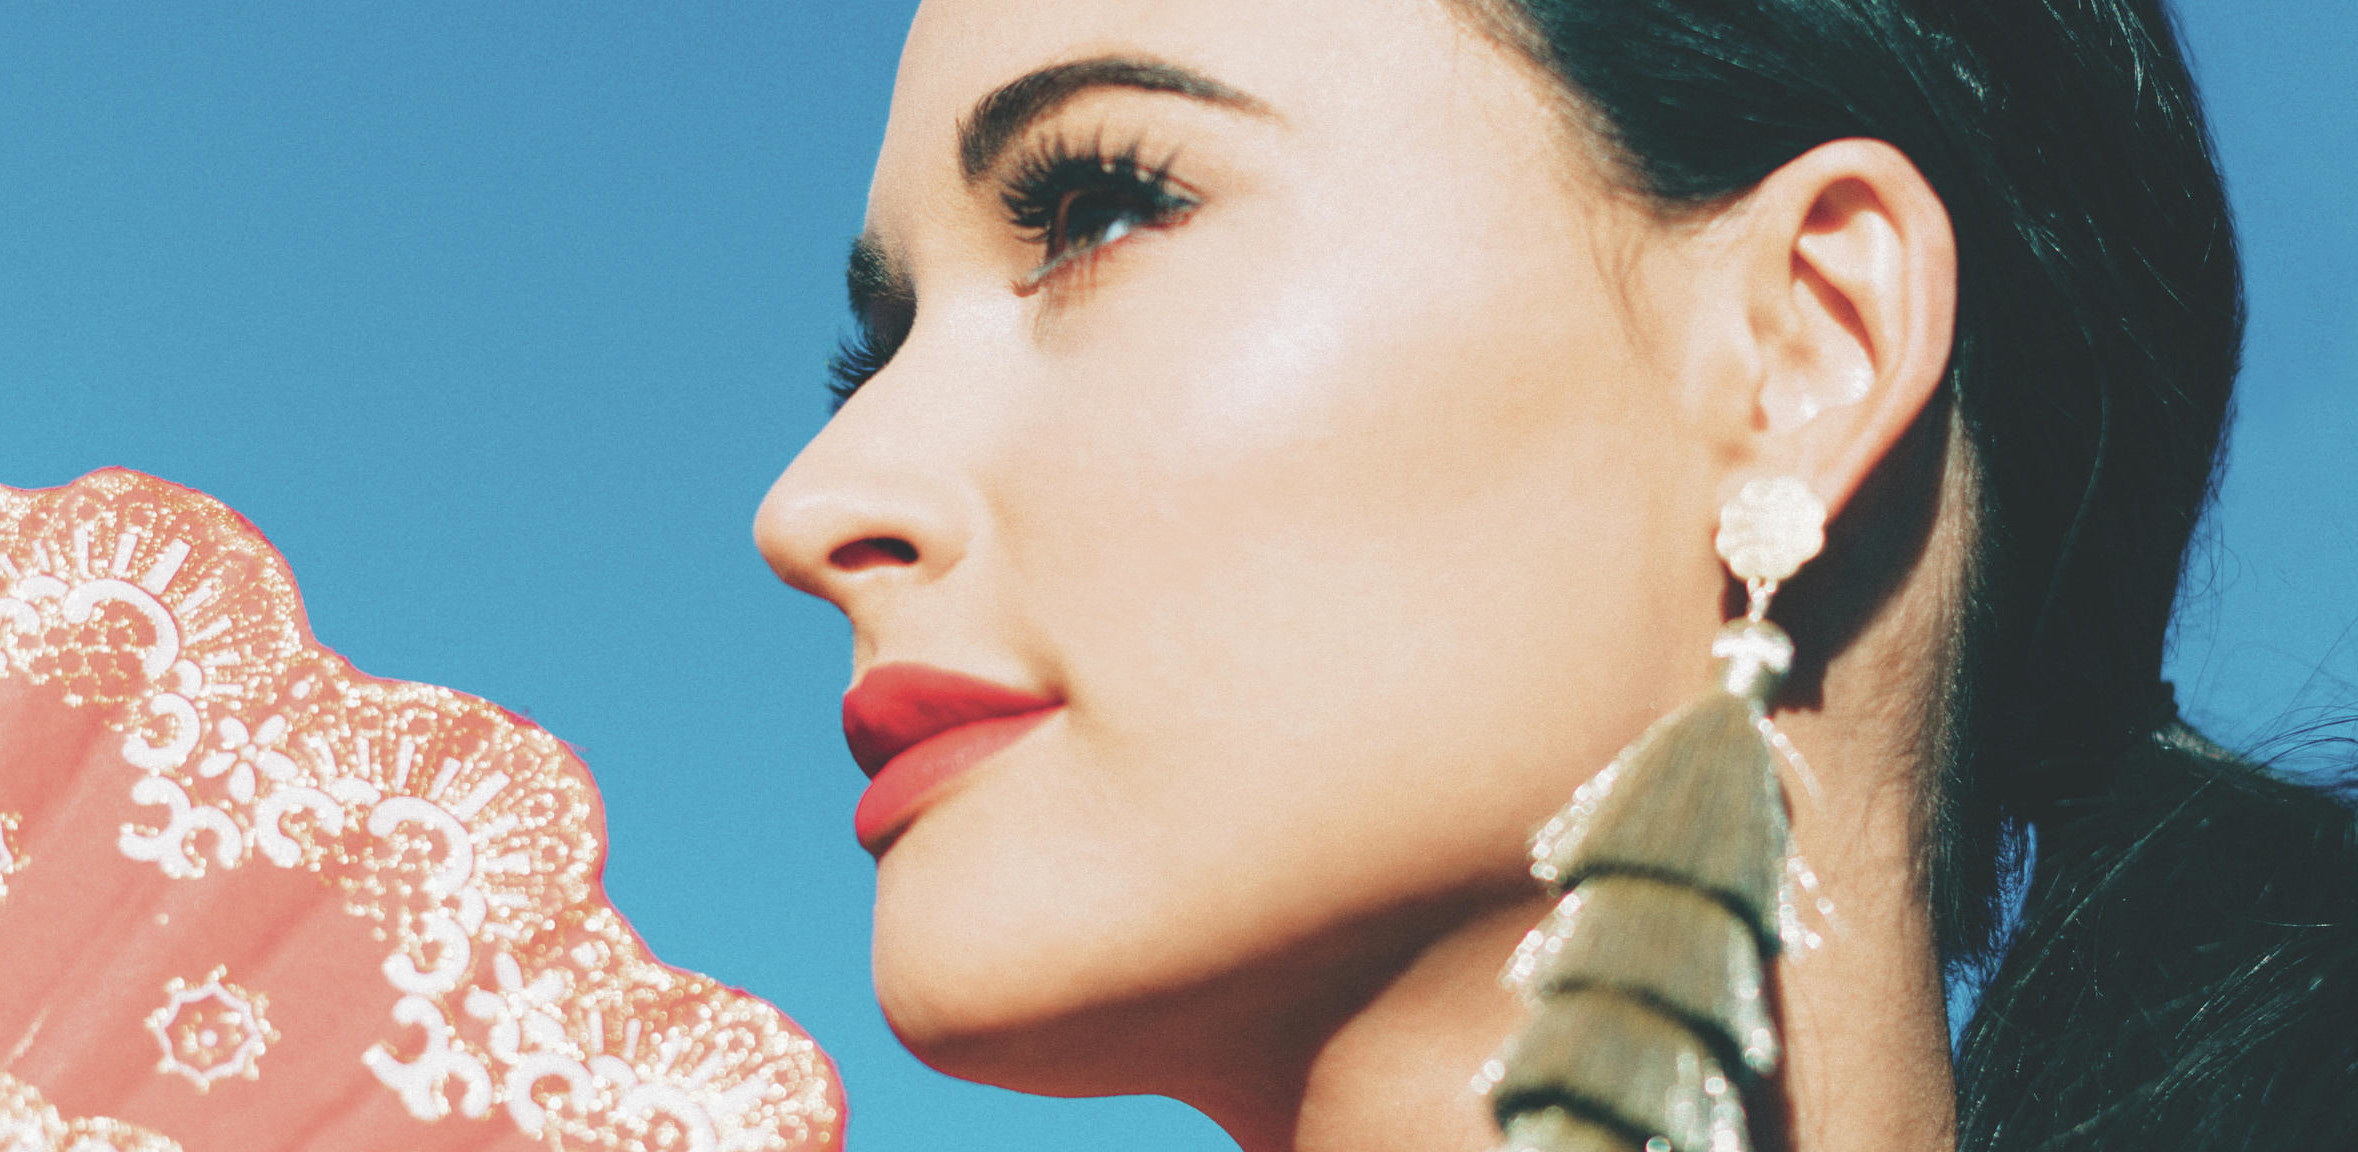 Kacey Musgraves' Golden Hour mixes her country-pop sound with disco and house